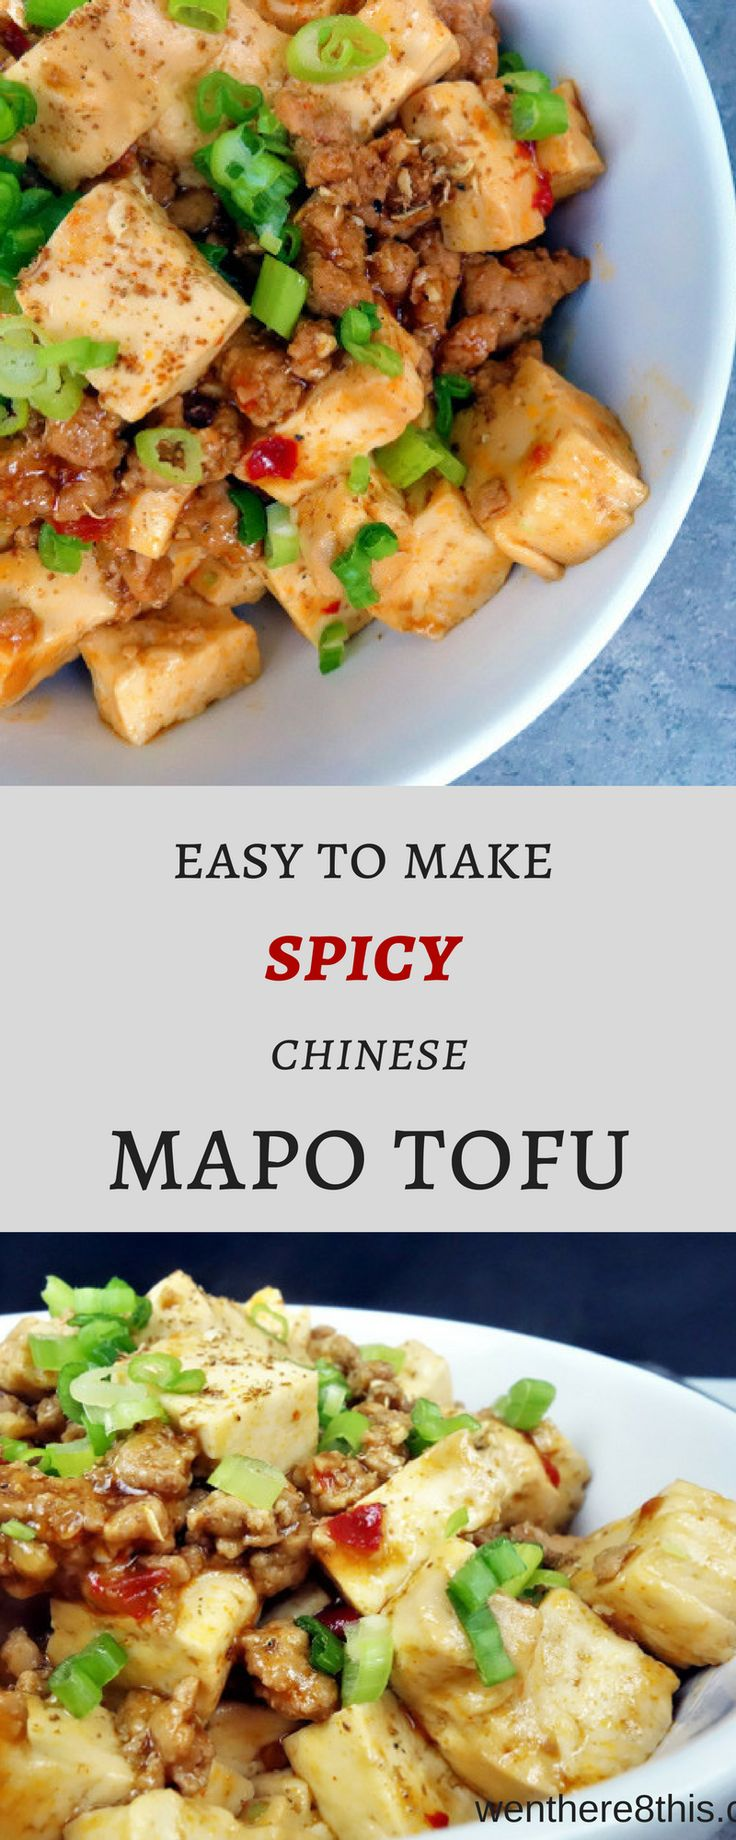 This easy to make spicy Chinese Mapo Tofu is packed full of delicious umami flavor! Cubed tofu in a thick, spicy umami sauce with ground pork...YUM. mapo tofu recipe, chinese mapo tofu easy, tofu recipe, tofu and pork recipe, Sichuan recipes, pf changs, Chinese recipes, spicy mapo tofu, spicy Chinese recipe, easy Chinese recipes, mapo tofu easy via @Went Here 8 This